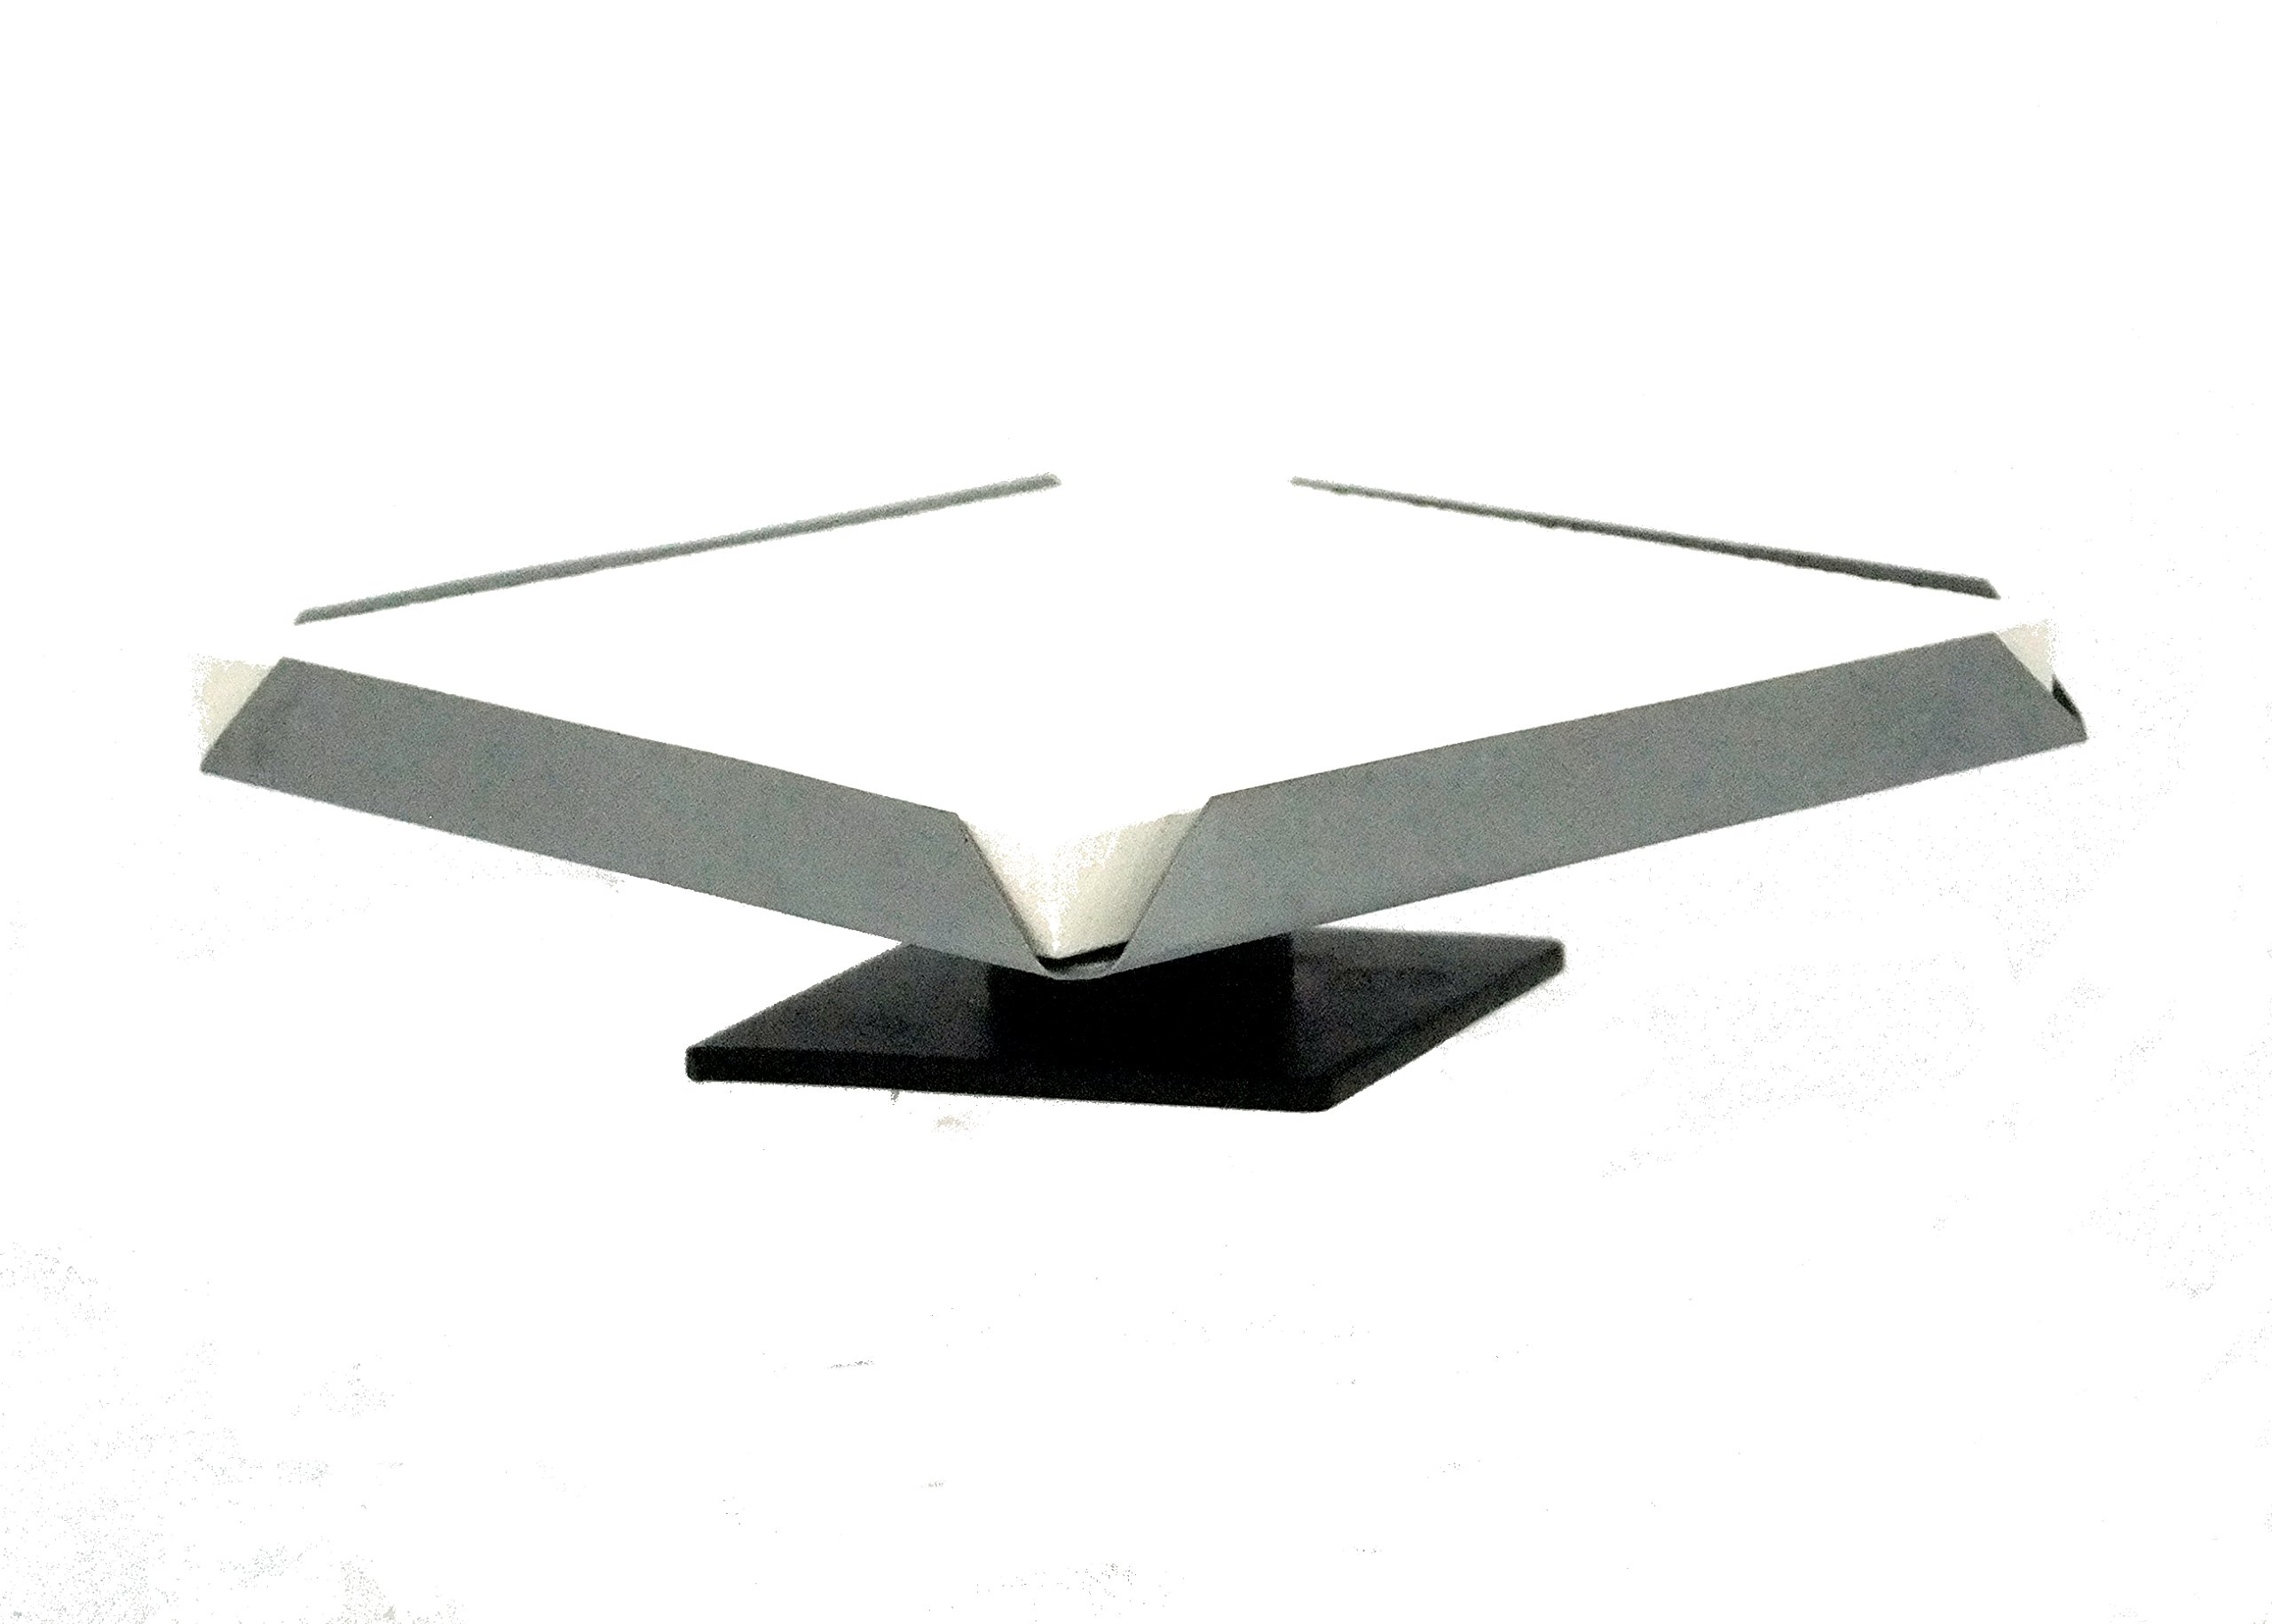 360 Degree Rotating Square Platform With 6x6 Inch Solder Board